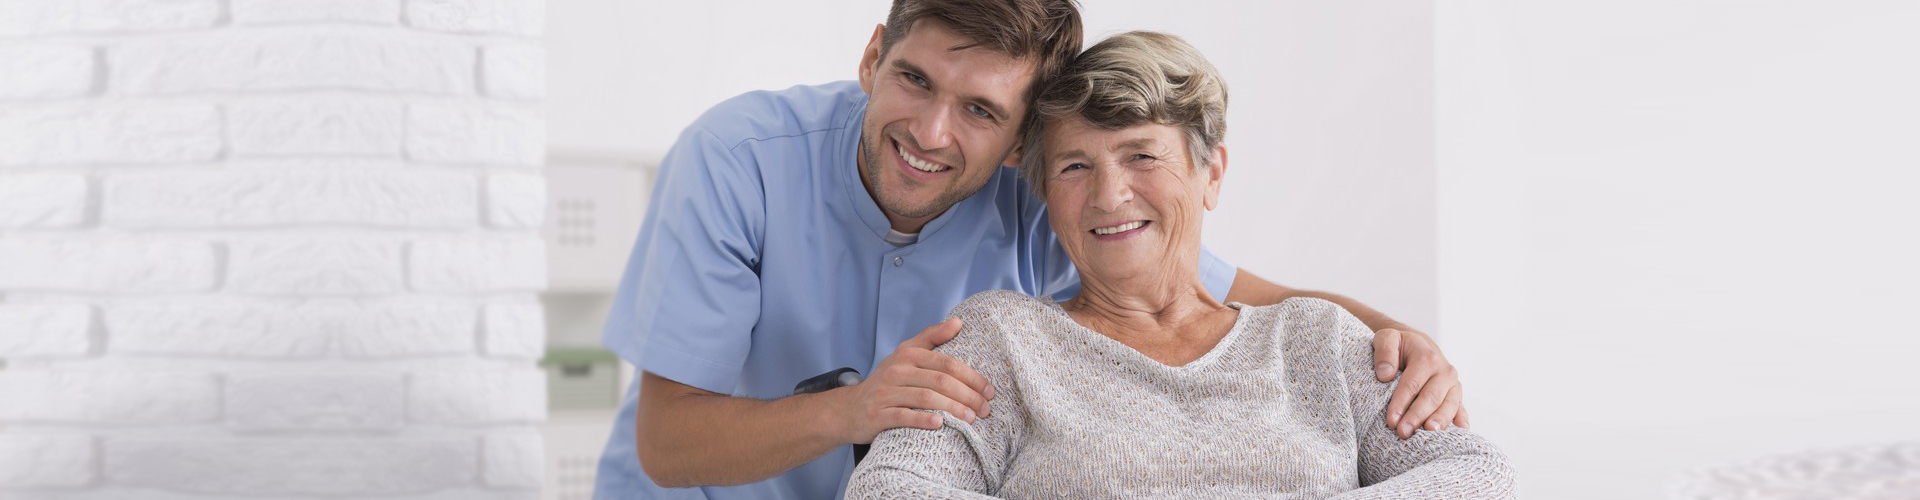 Caregiver smiling together with elderly woman